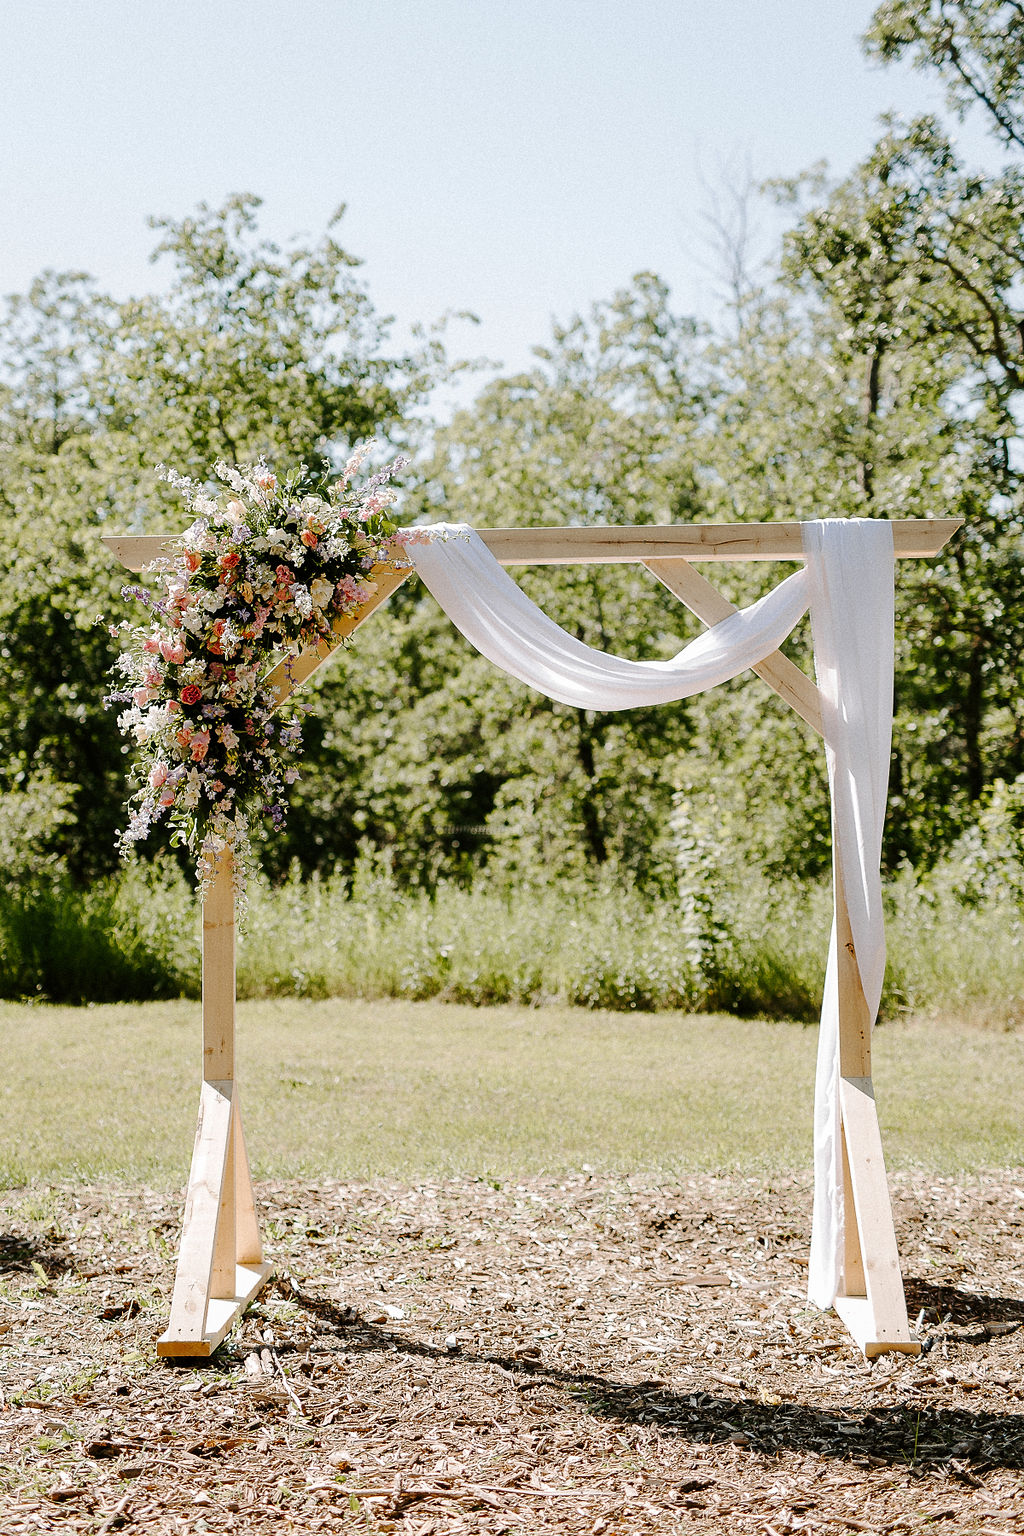 Wedding Arch with Blush and Lavender Flowers - Winnipeg's Top Wedding Florist